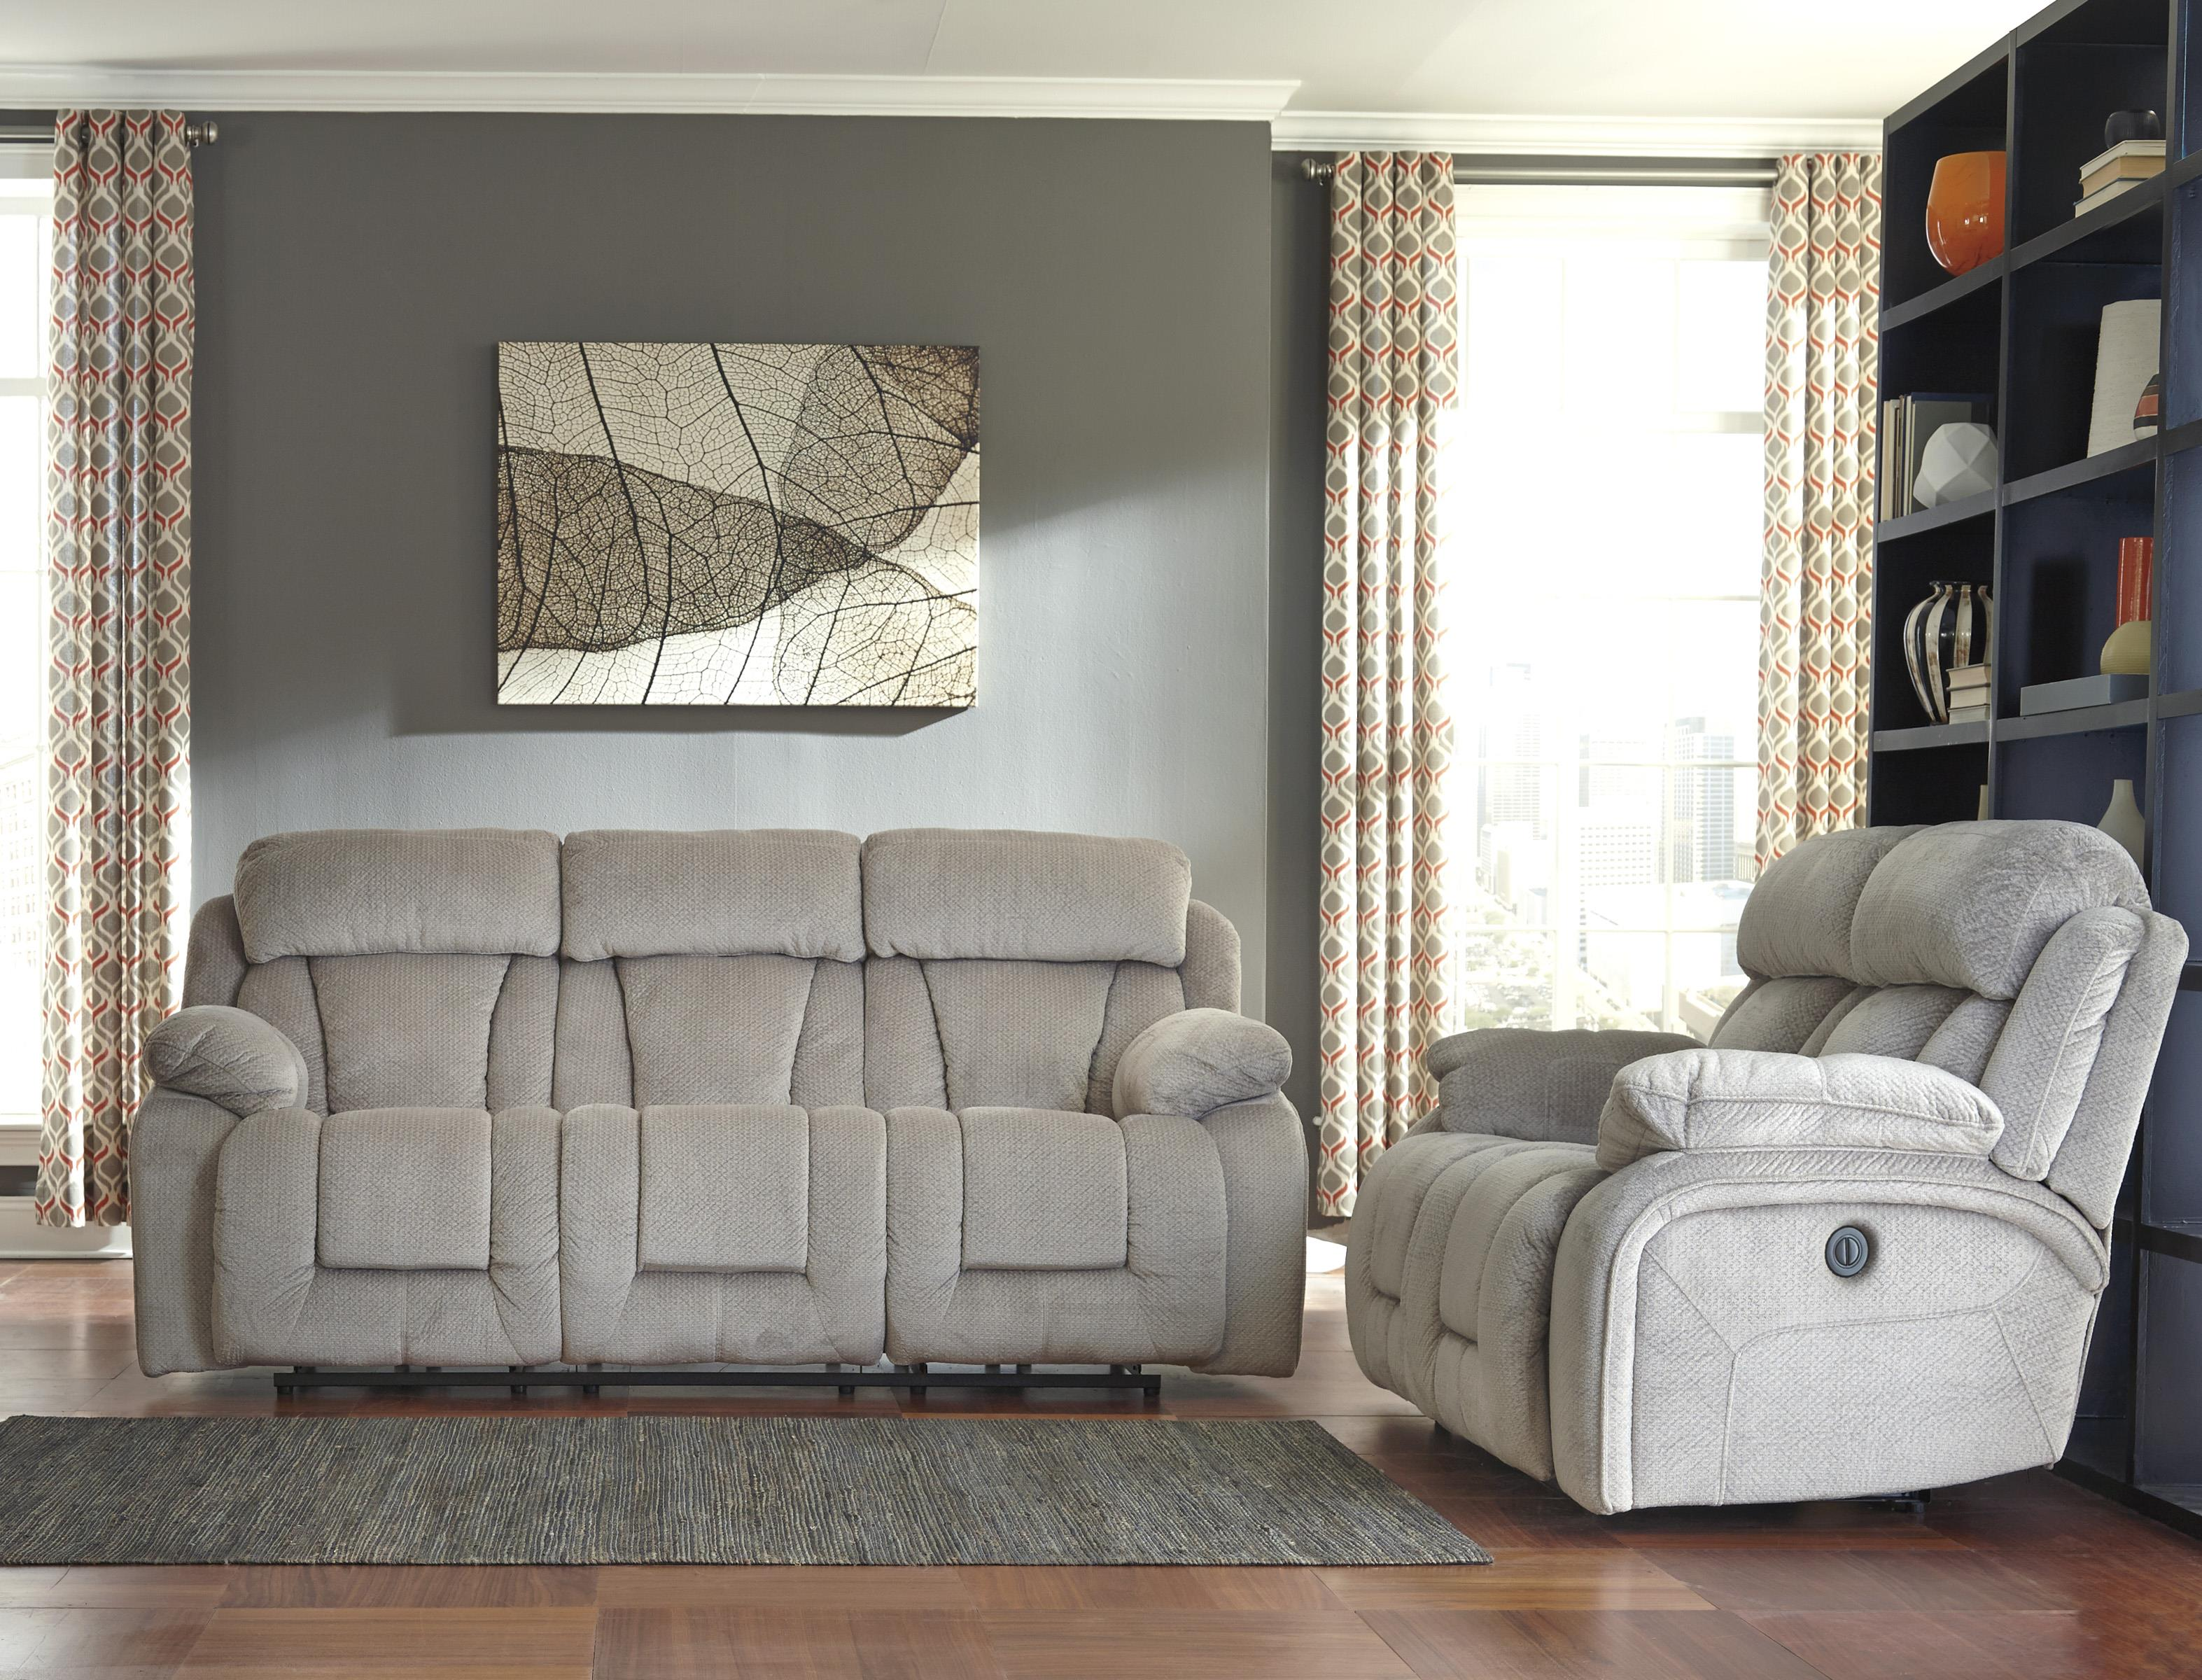 Signature Design by Ashley Stricklin Reclining Living Room Group - Item Number: 86504 Living Room Group 1